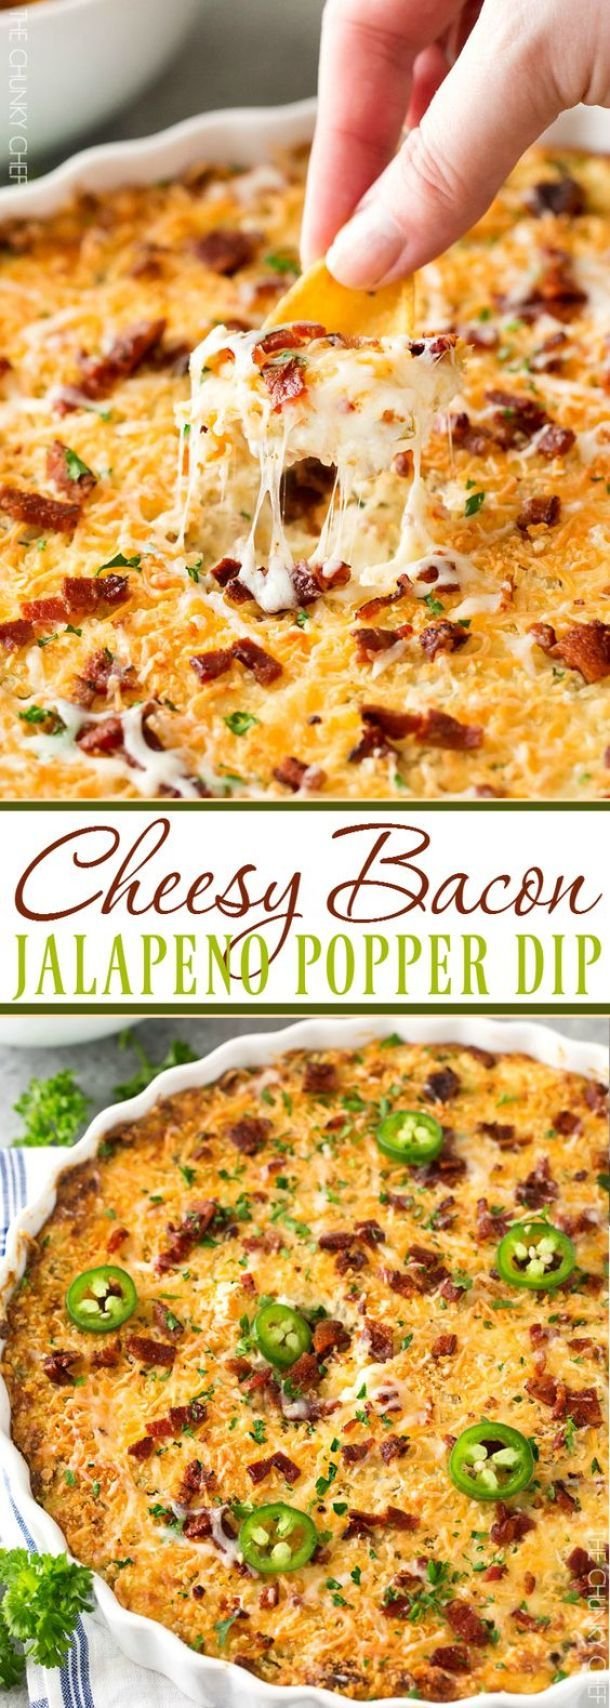 Loaded Cheesy Bacon Jalapeno Popper Dip Recipe | The Chunky Chef - The Best Easy Party Appetizers and Finger Foods Recipes - Quick family friendly snacks for Holidays, Tailgating and Super Bowl Parties!